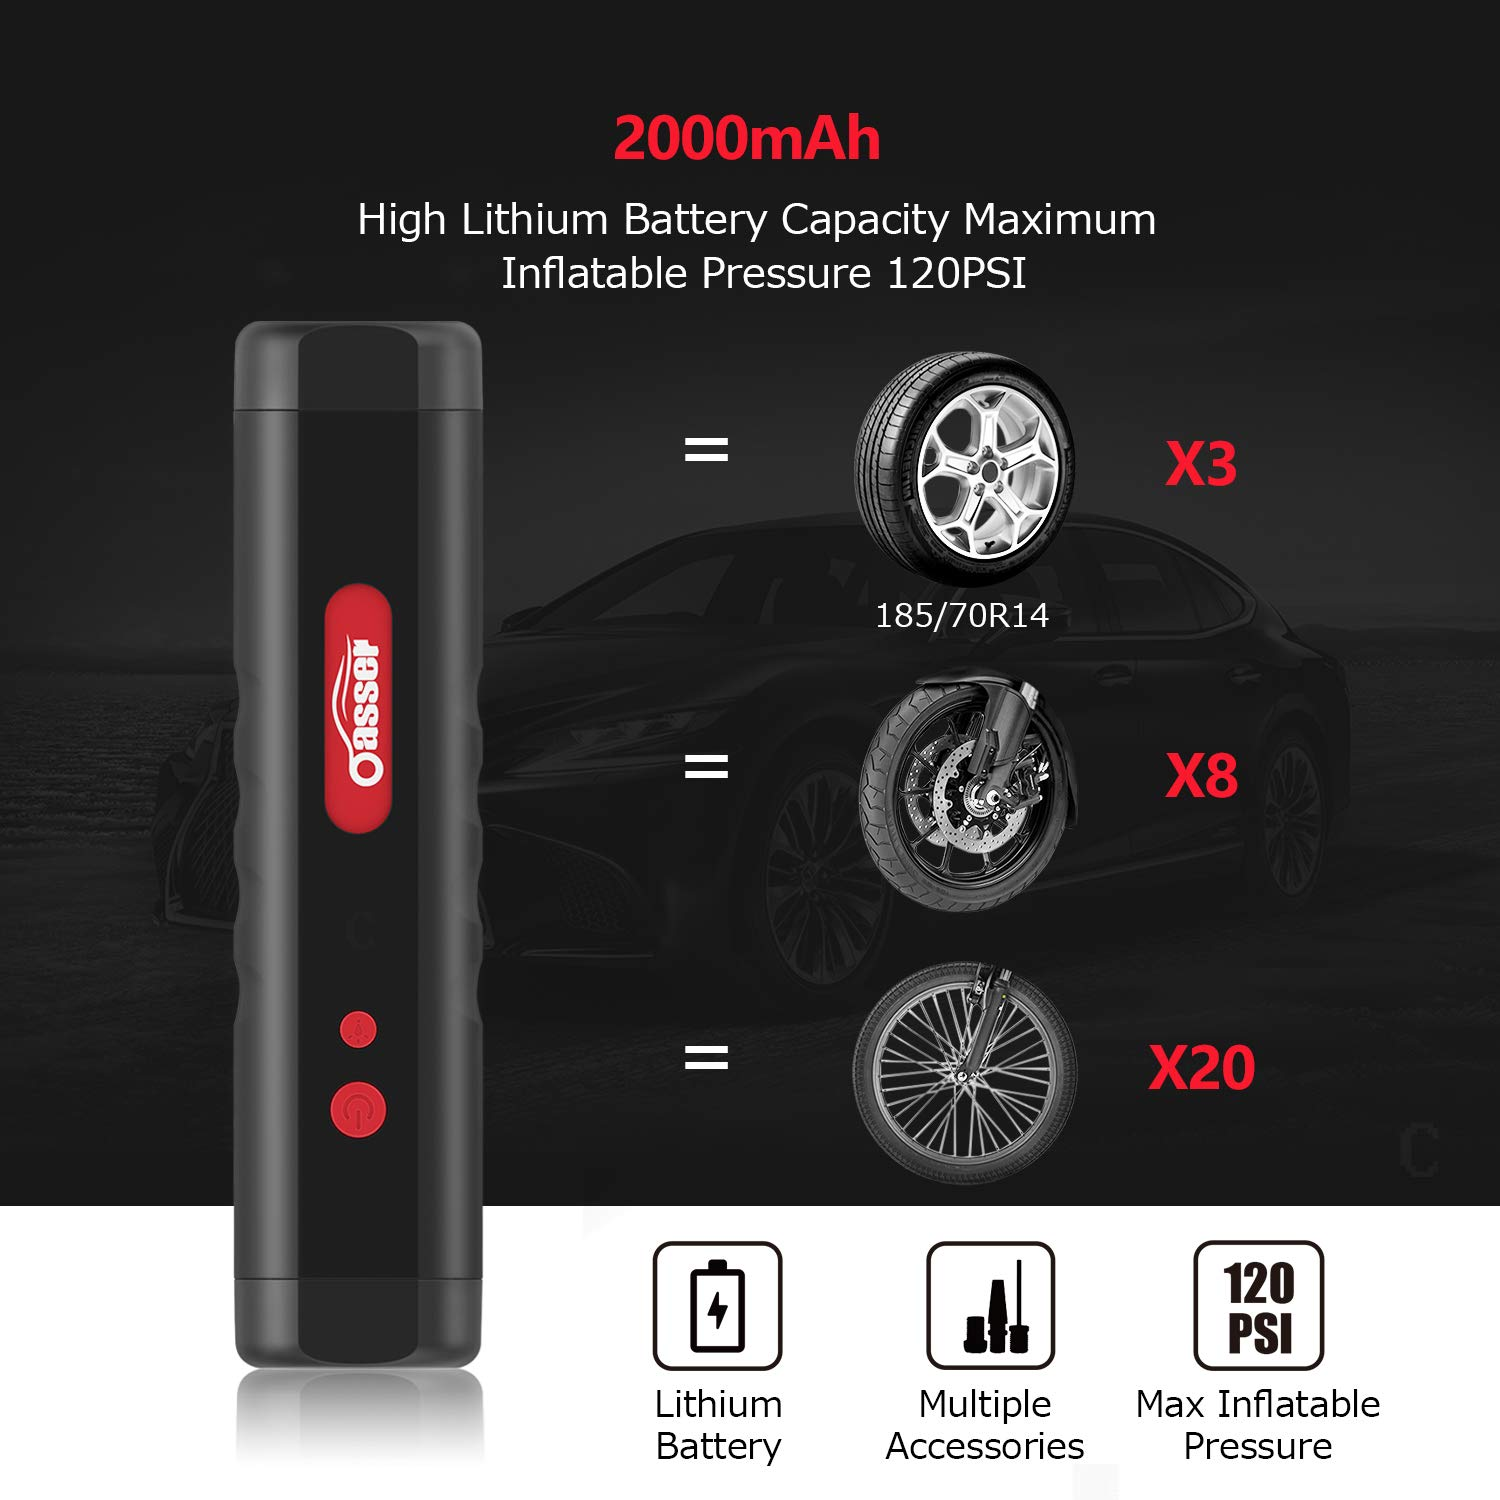 Oasser Air Compressor Portable Mini Air Inflator Hand Held Tire Pump 2000mAh with Digital LCD LED Light 12V AC DC Lithium Battery 120PSI 20Litres/Min for Car Bicycle Tires and Other Inflatables P1S by Oasser (Image #3)